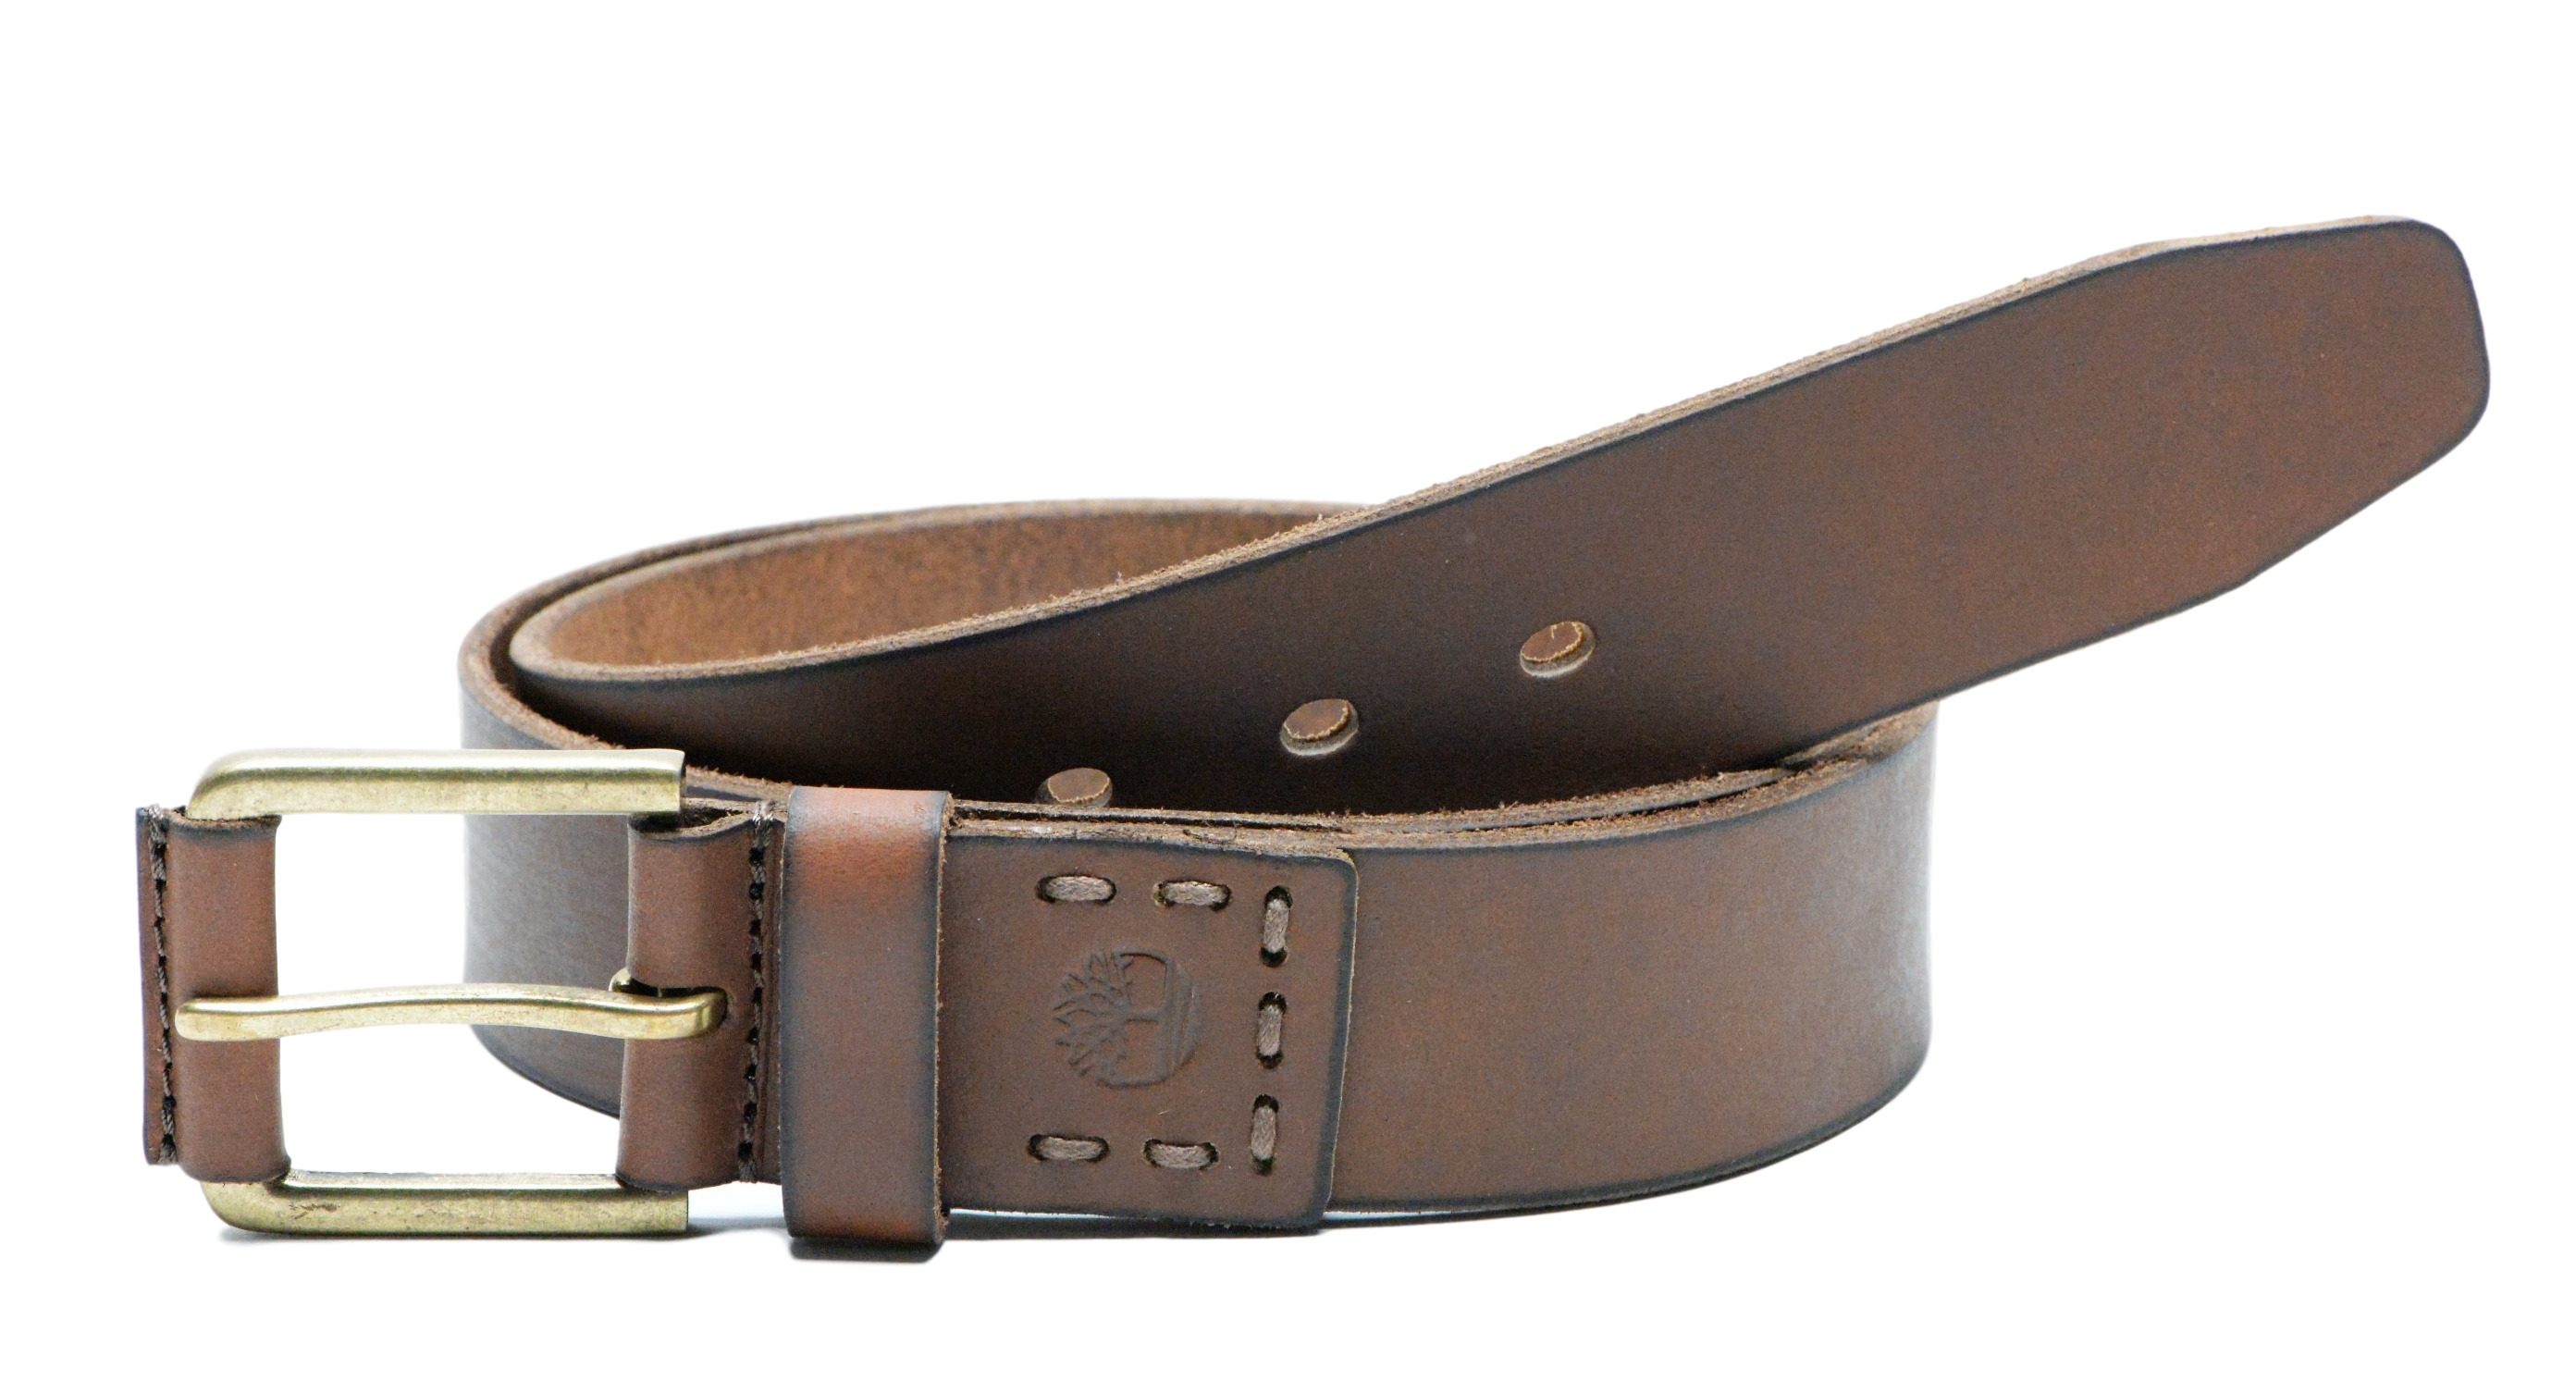 Timberland-Men-039-s-Casual-Distressed-Genuine-Leather-Belt thumbnail 10